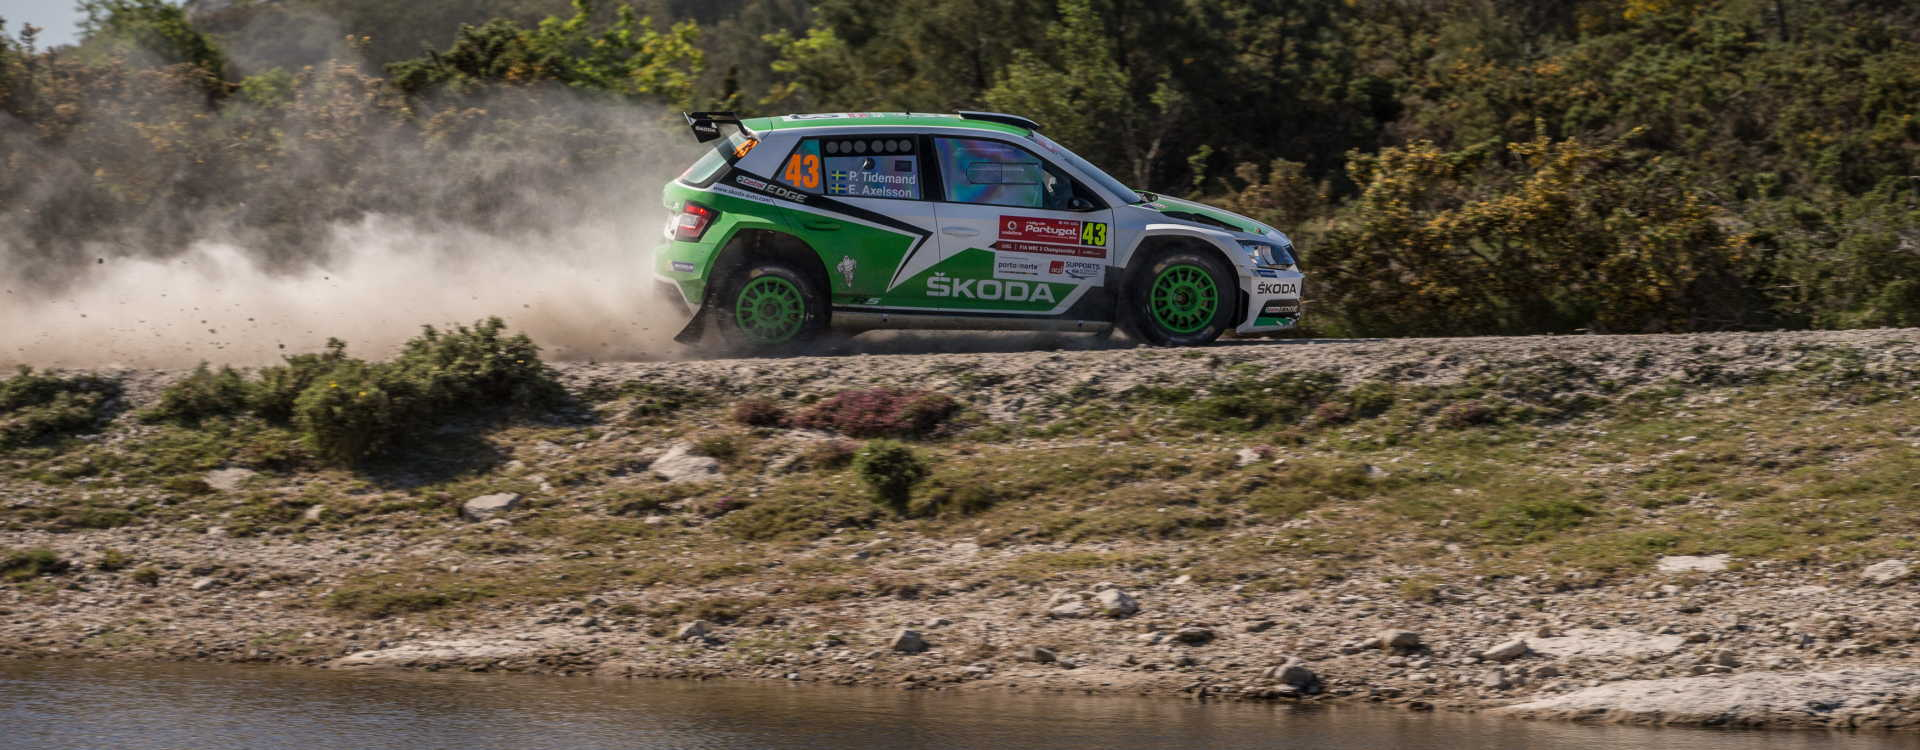 WRC Portugal Preview: Only small changes after the last year's success